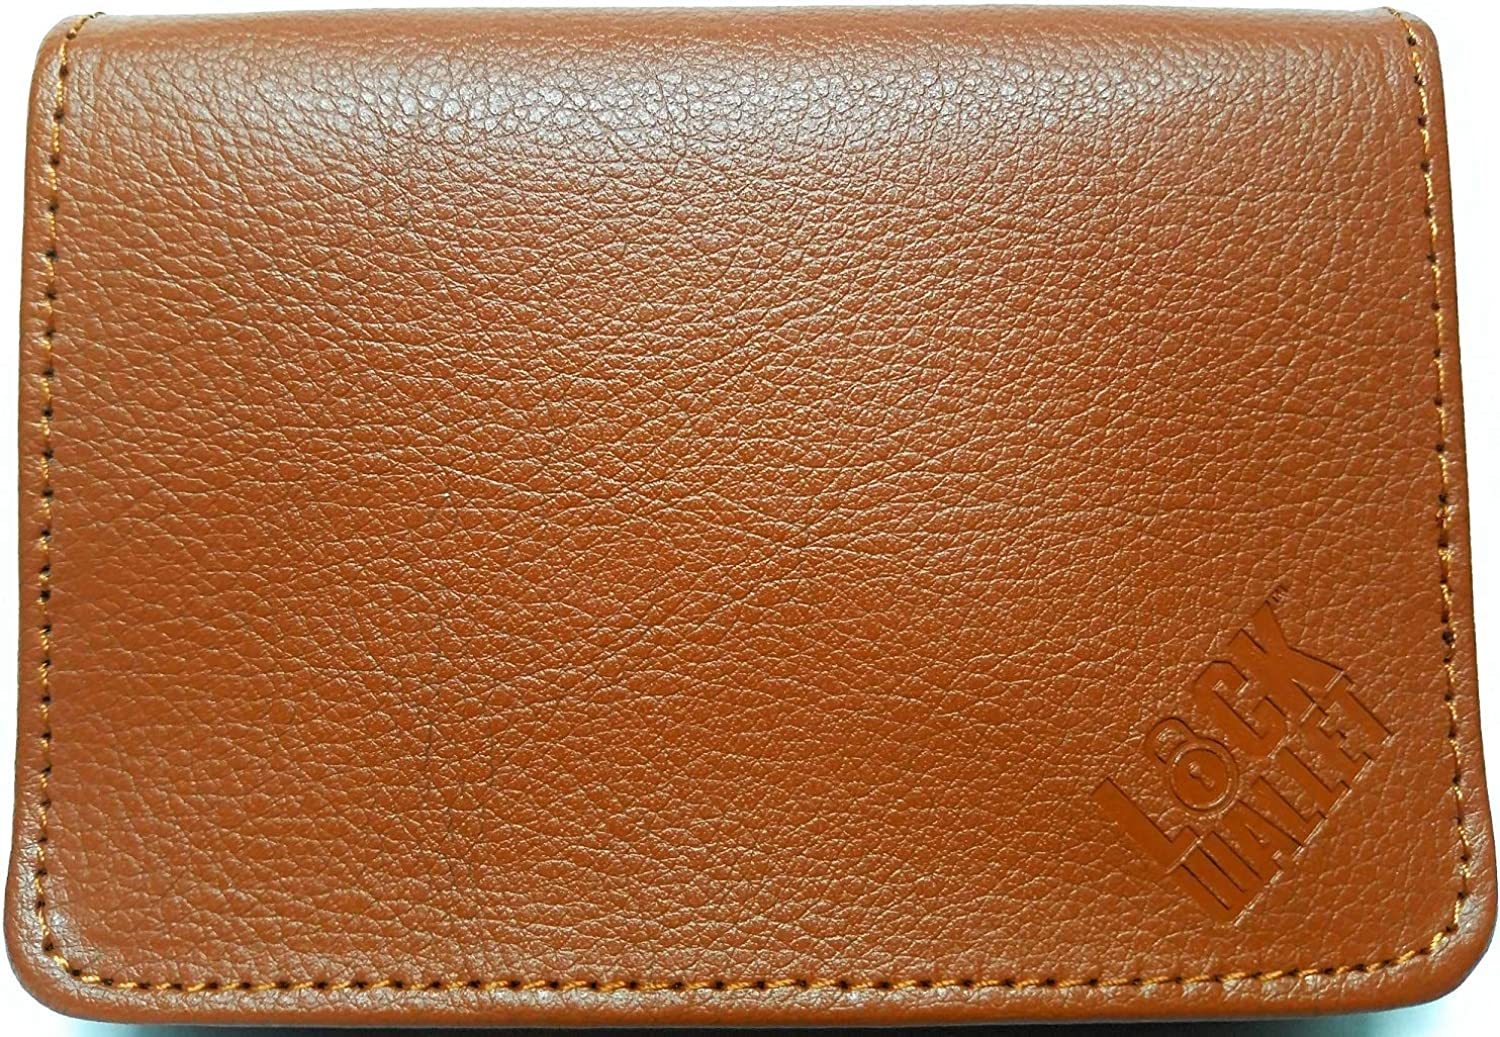 Lock Wallet - RFID Blocking Wallet for Men and Women – Protection from Identity Theft